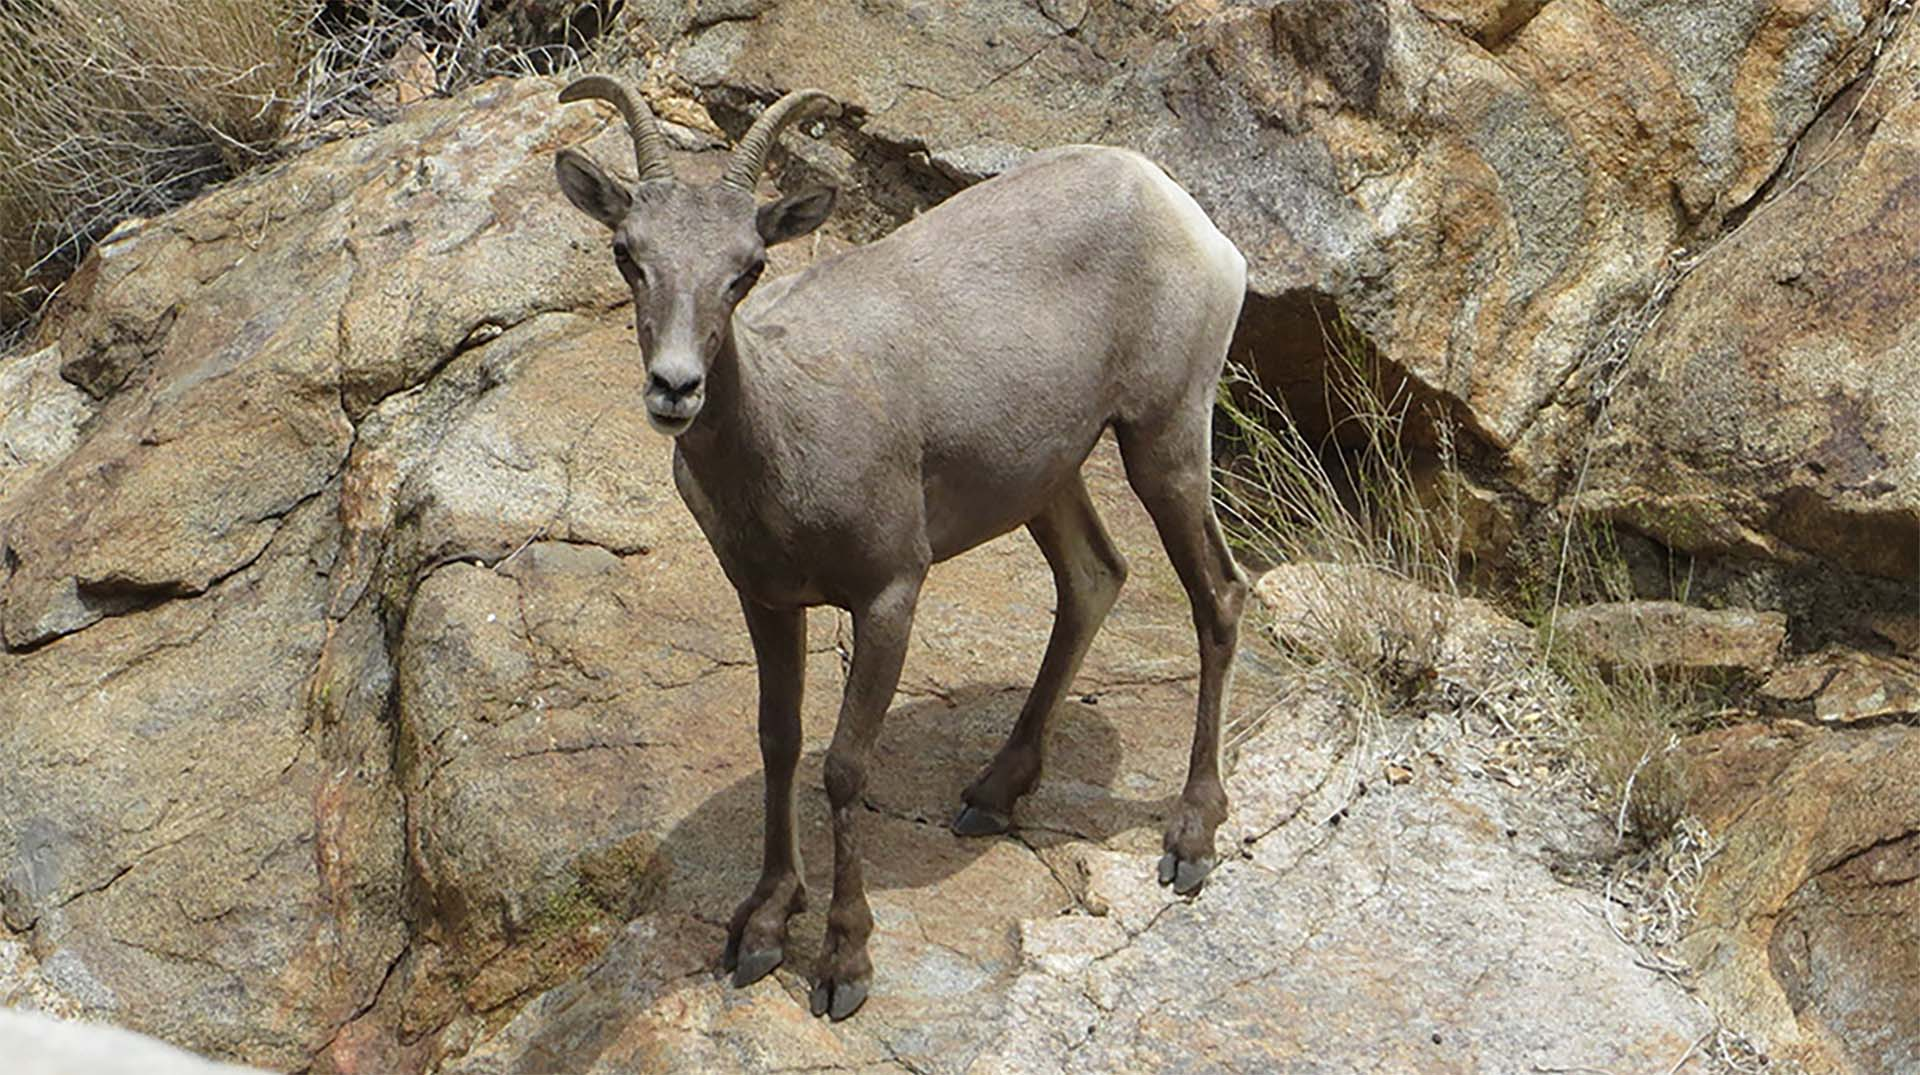 A bighorn sheep standing on rugged terrain.